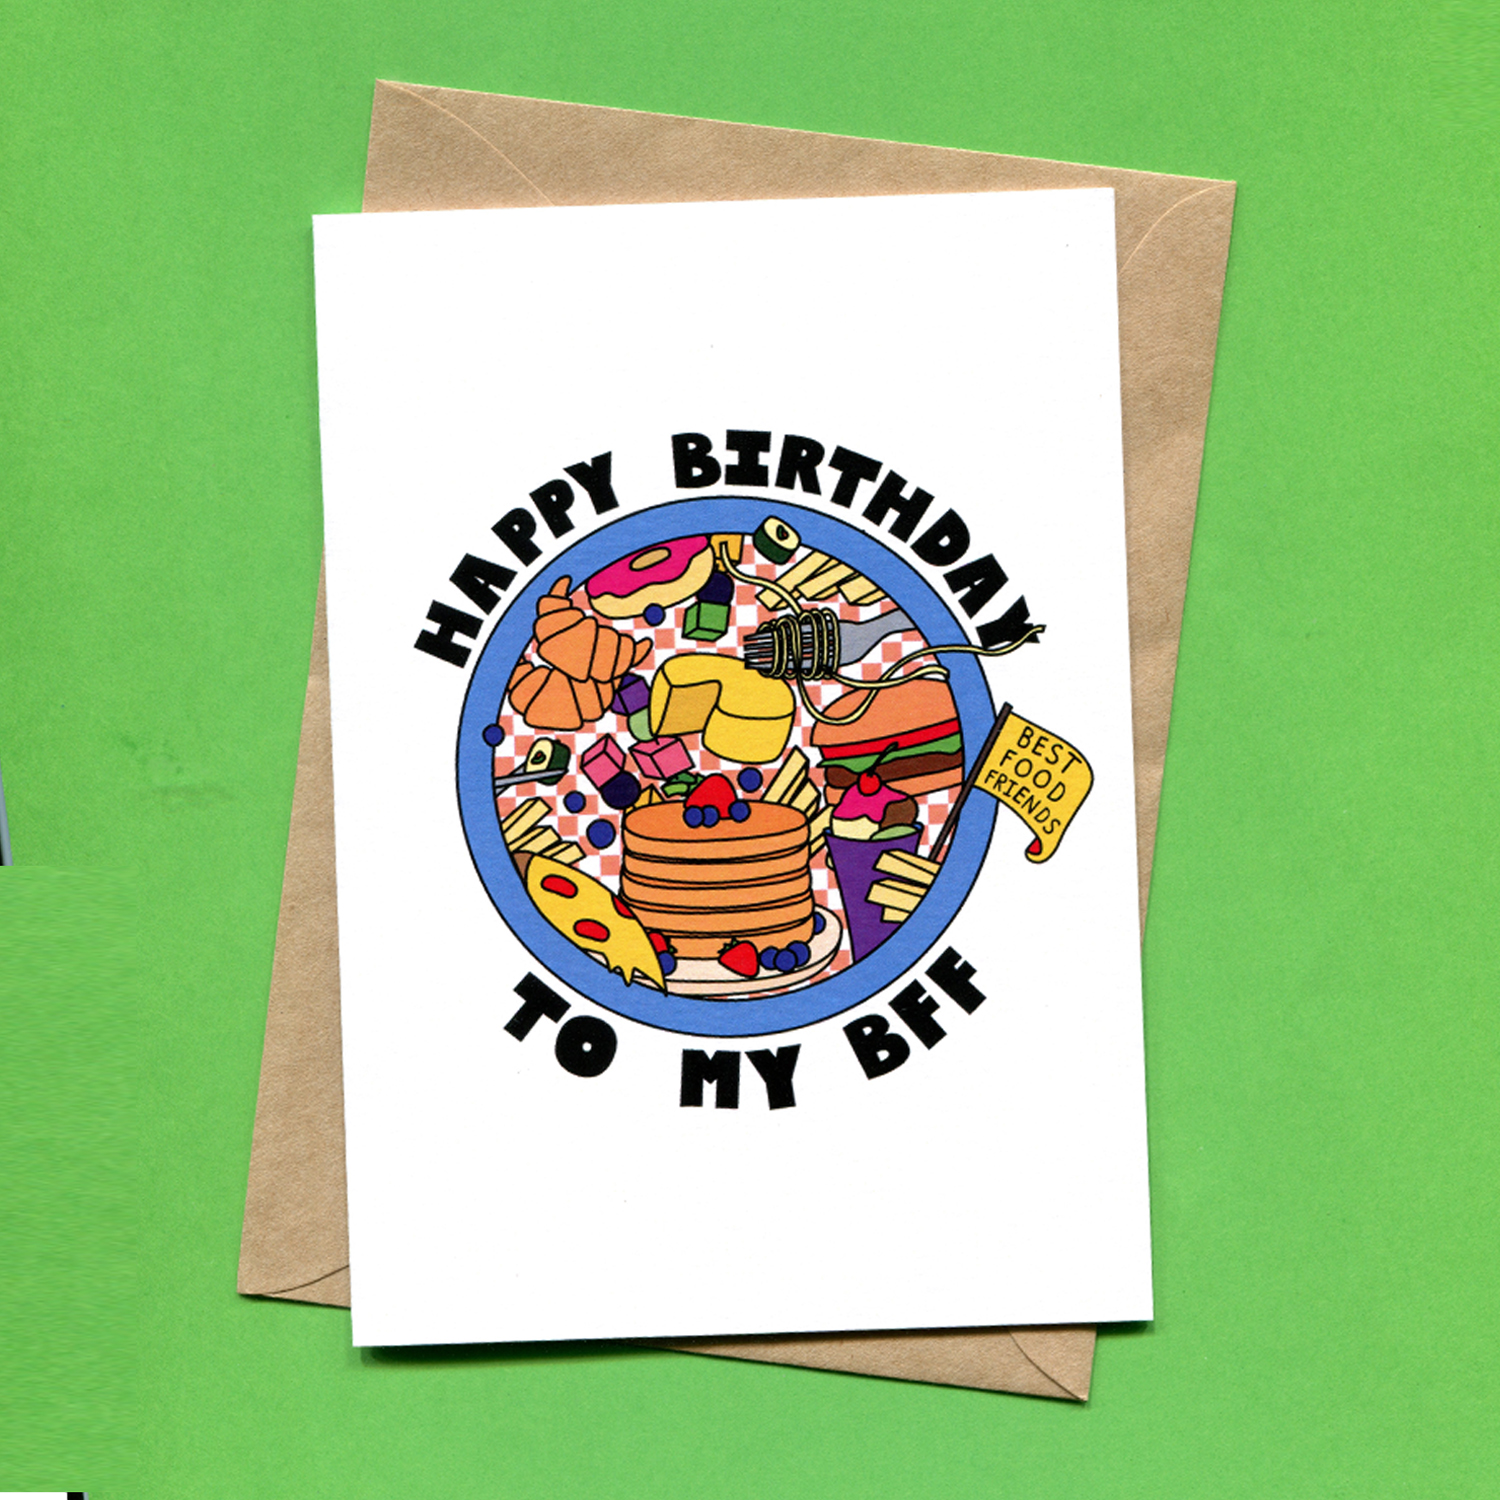 Catalogue_Things by Bean Happy Birthday to My BFF Best Food Friend Foodie Birthday Greeting Card.jpg